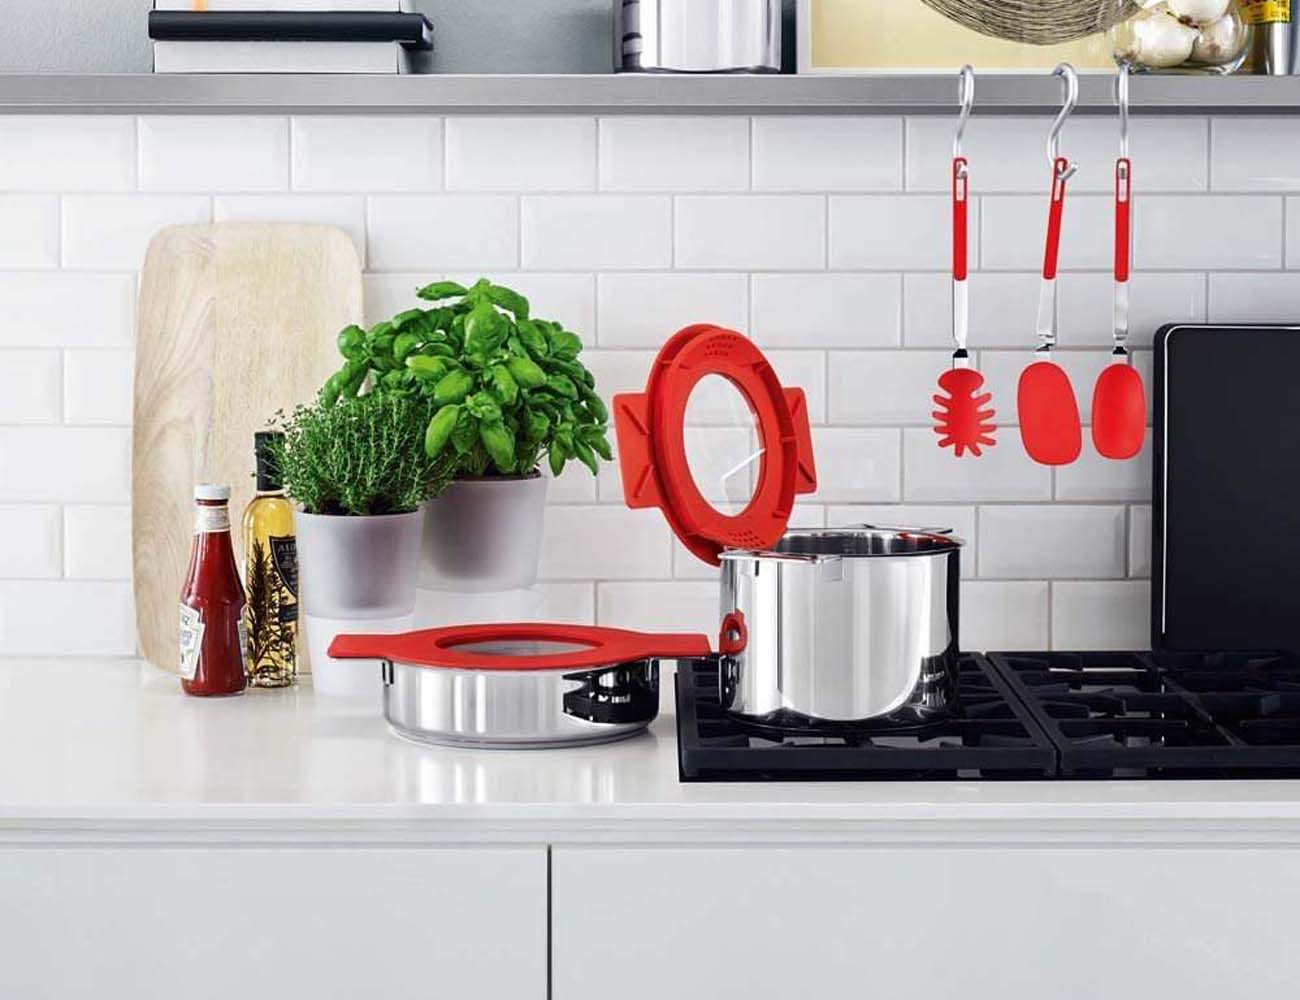 Gravity+Cookware+%26%238211%3B+New+Series+Of+Pots+And+Pans+By+Eva+Solo